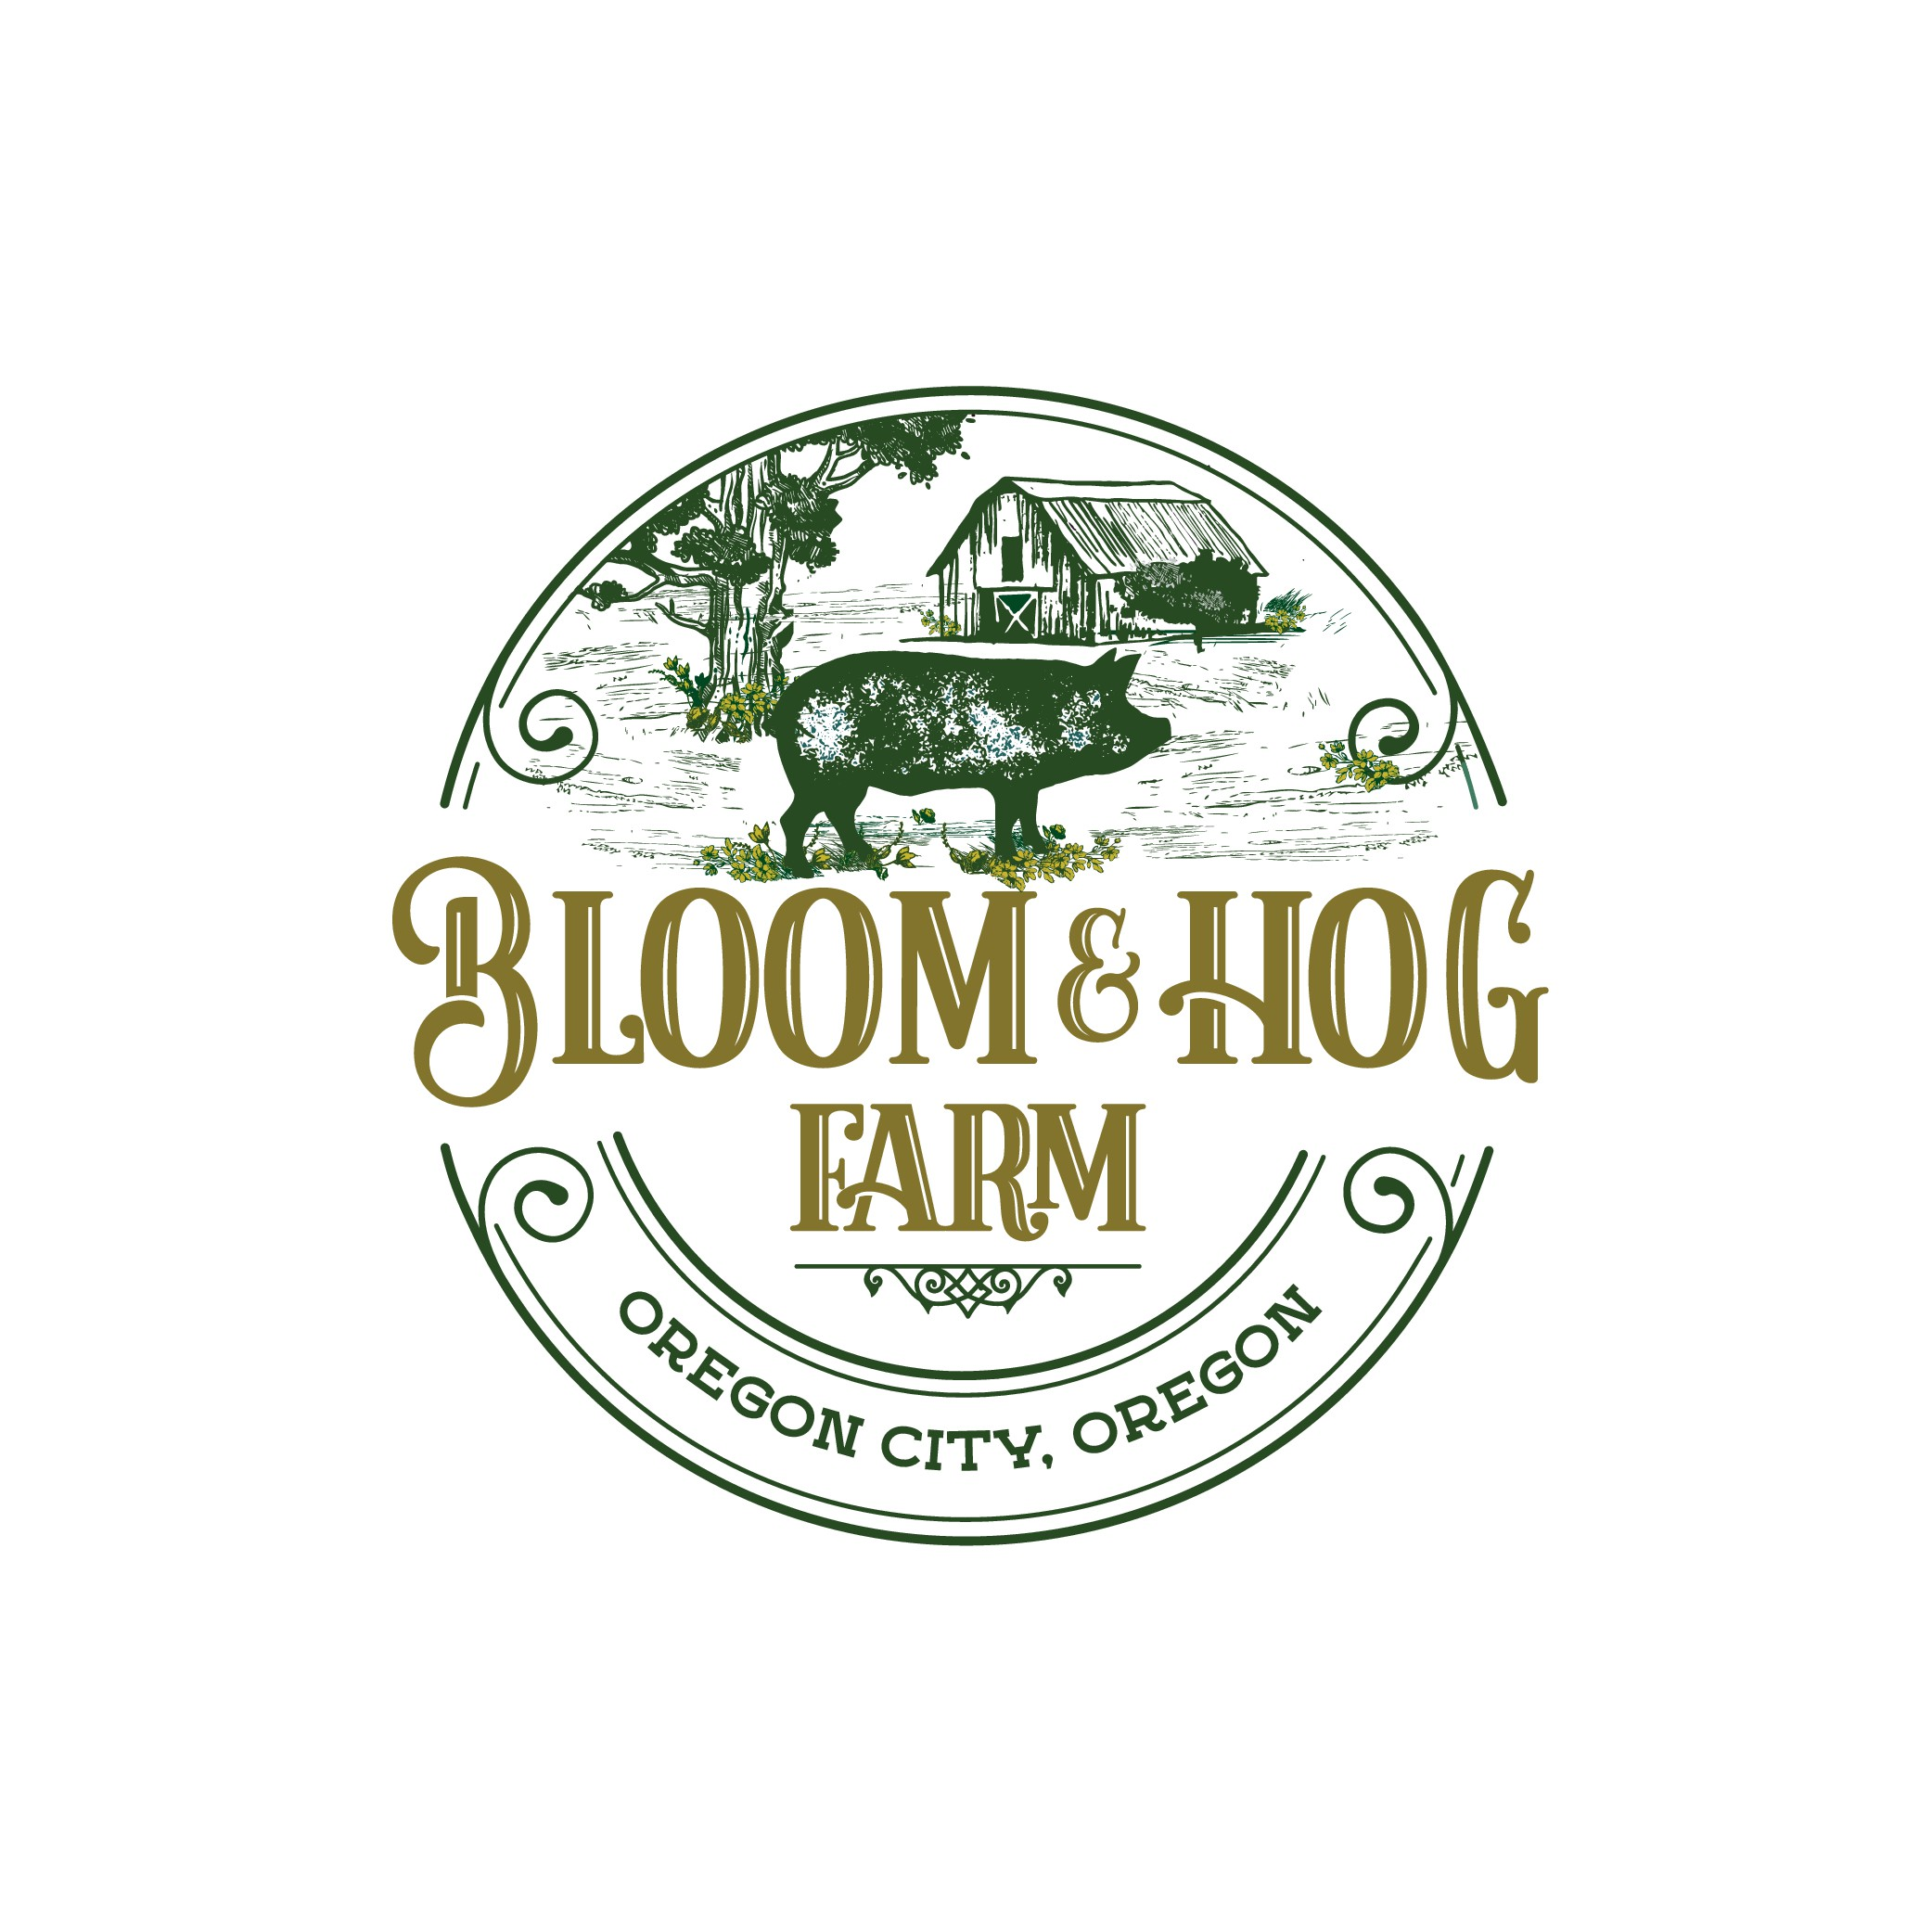 Vintage farm logo for farm growing only flowers and hogs